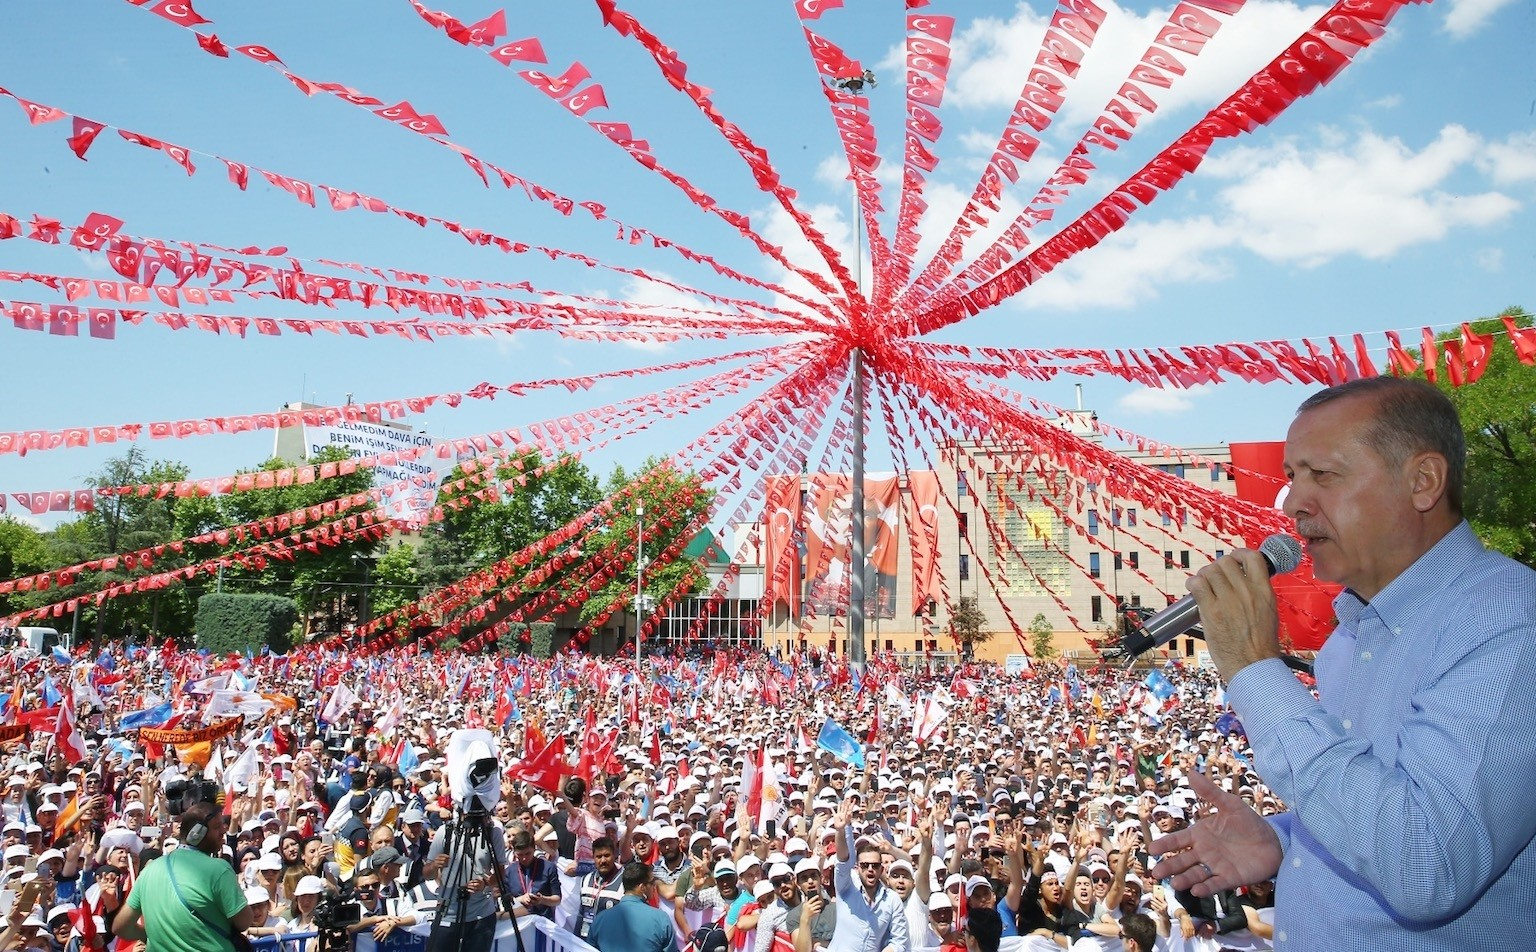 President Recep Tayyip Erdou011fan stressed that Turkish people trust his experience as a person who served as both prime minister and president.